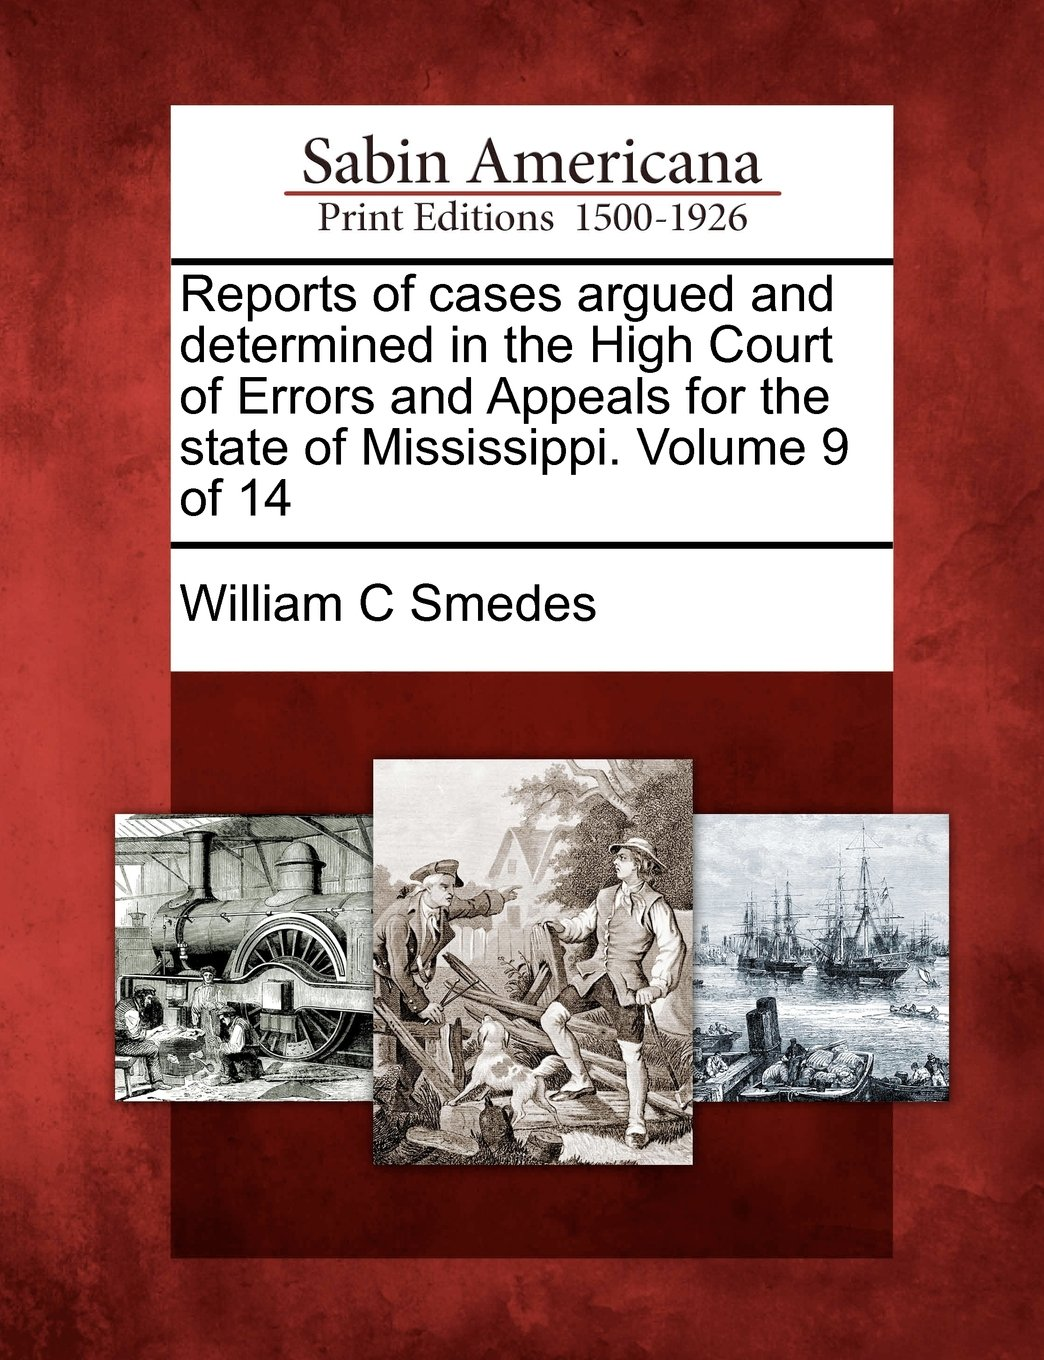 Reports of cases argued and determined in the High Court of Errors and Appeals for the state of Mississippi. Volume 9 of 14 pdf